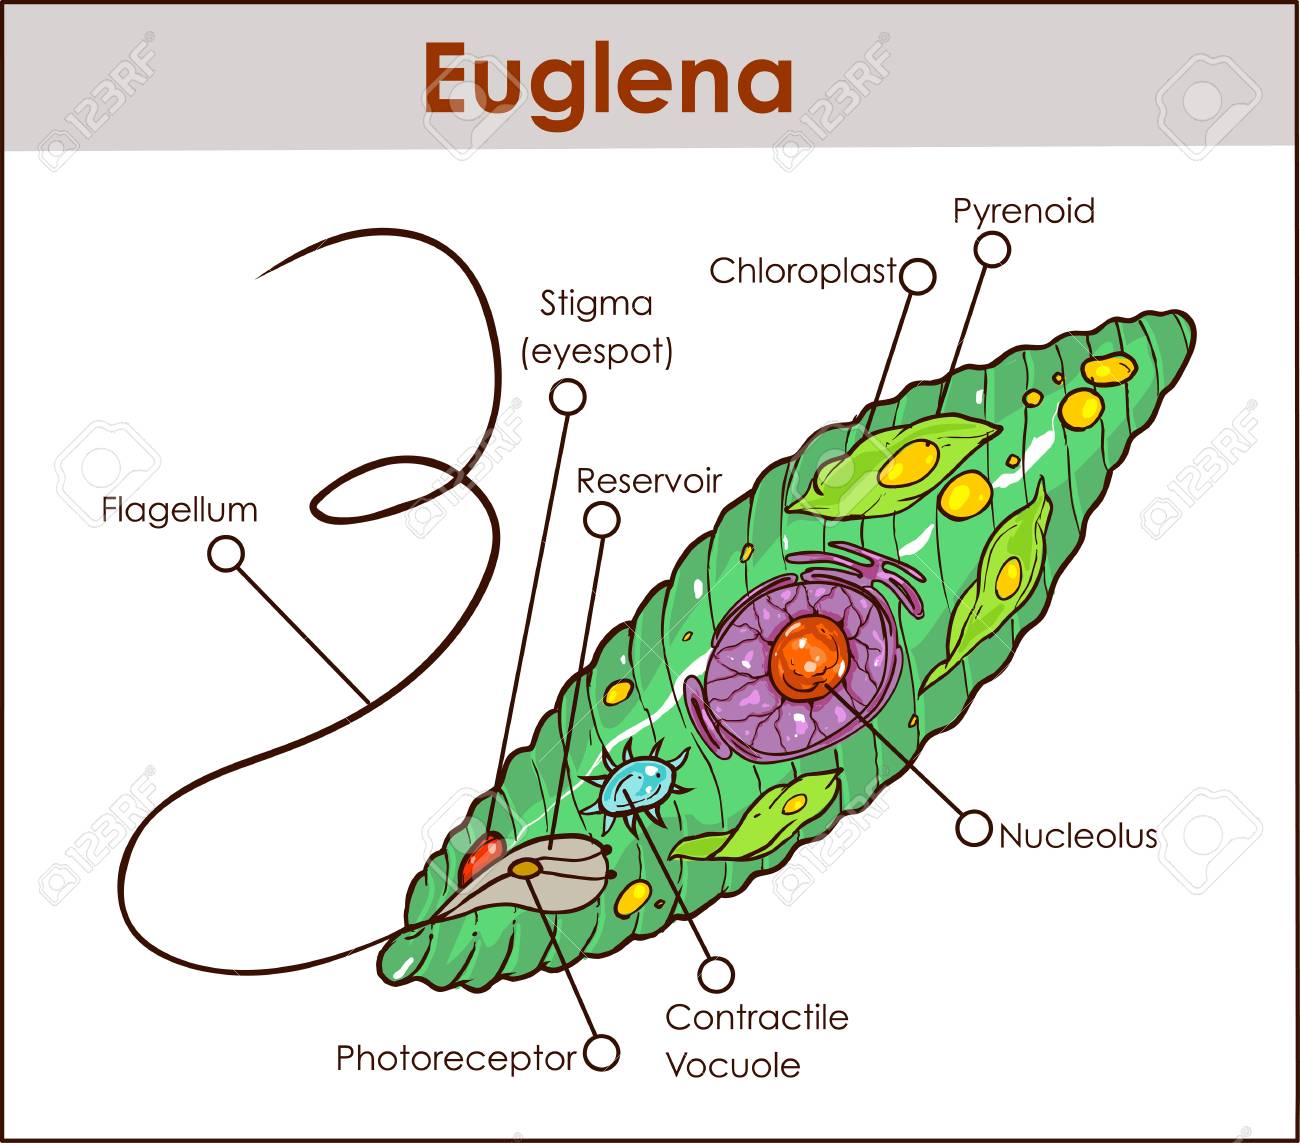 hight resolution of a colored vector illustration of euglena cross section diagram diagram of euglena with labeled diagram of euglena